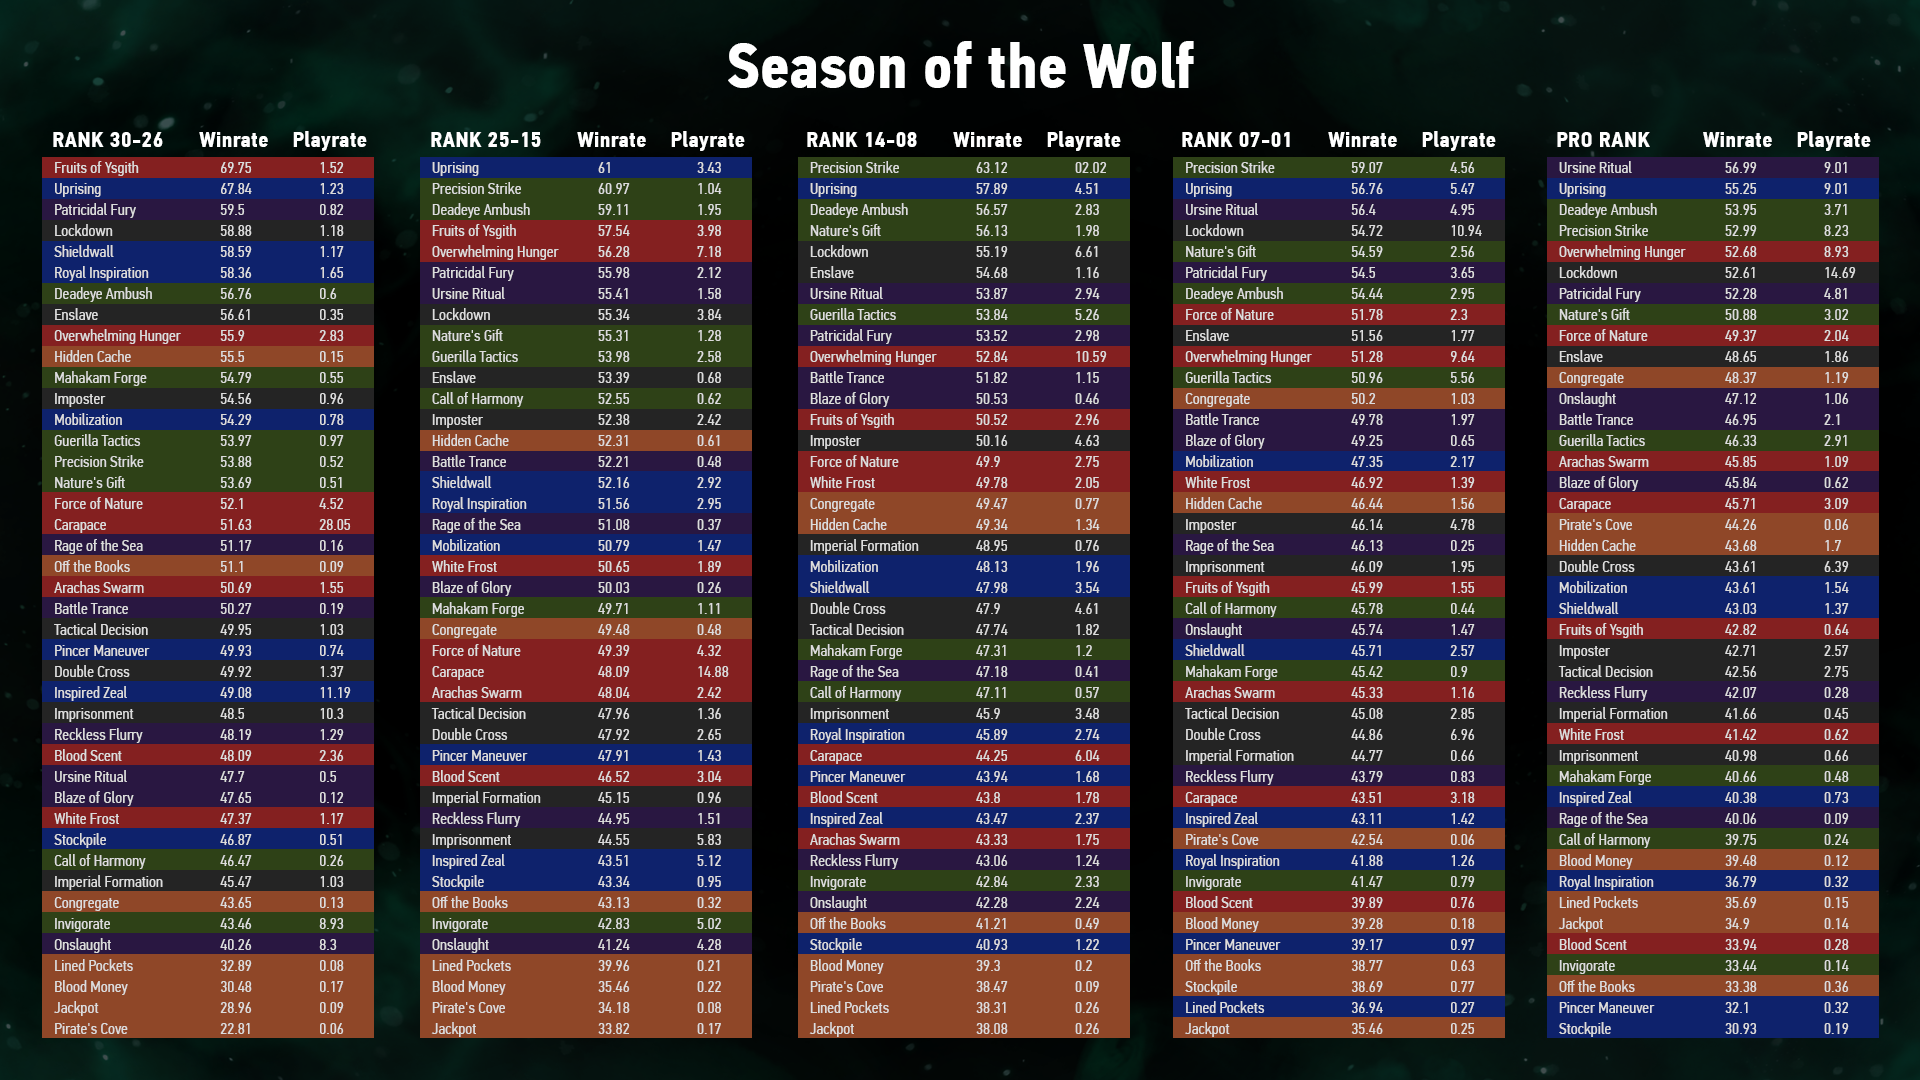 Season_Of_the_wolf.png